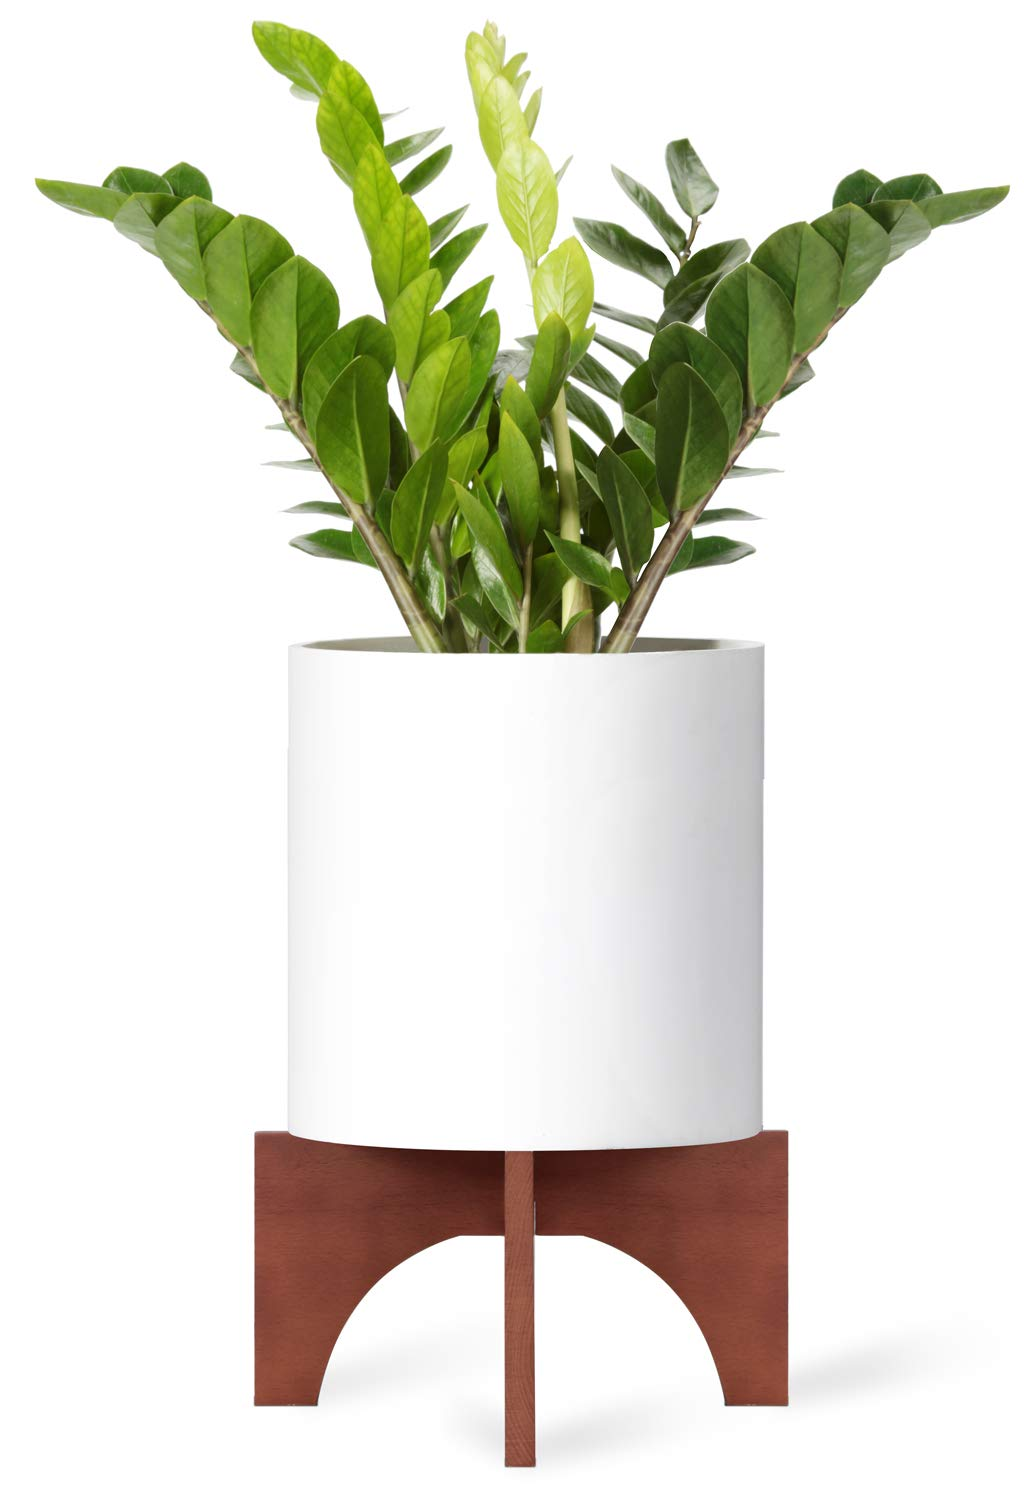 Mkono Plant Stand Wood Mid Century Flower Pot Holder (Pot Not Included) Home Decor Potted Rack Rustic Decor, Fits Up to 12 Inch Planter, Brown